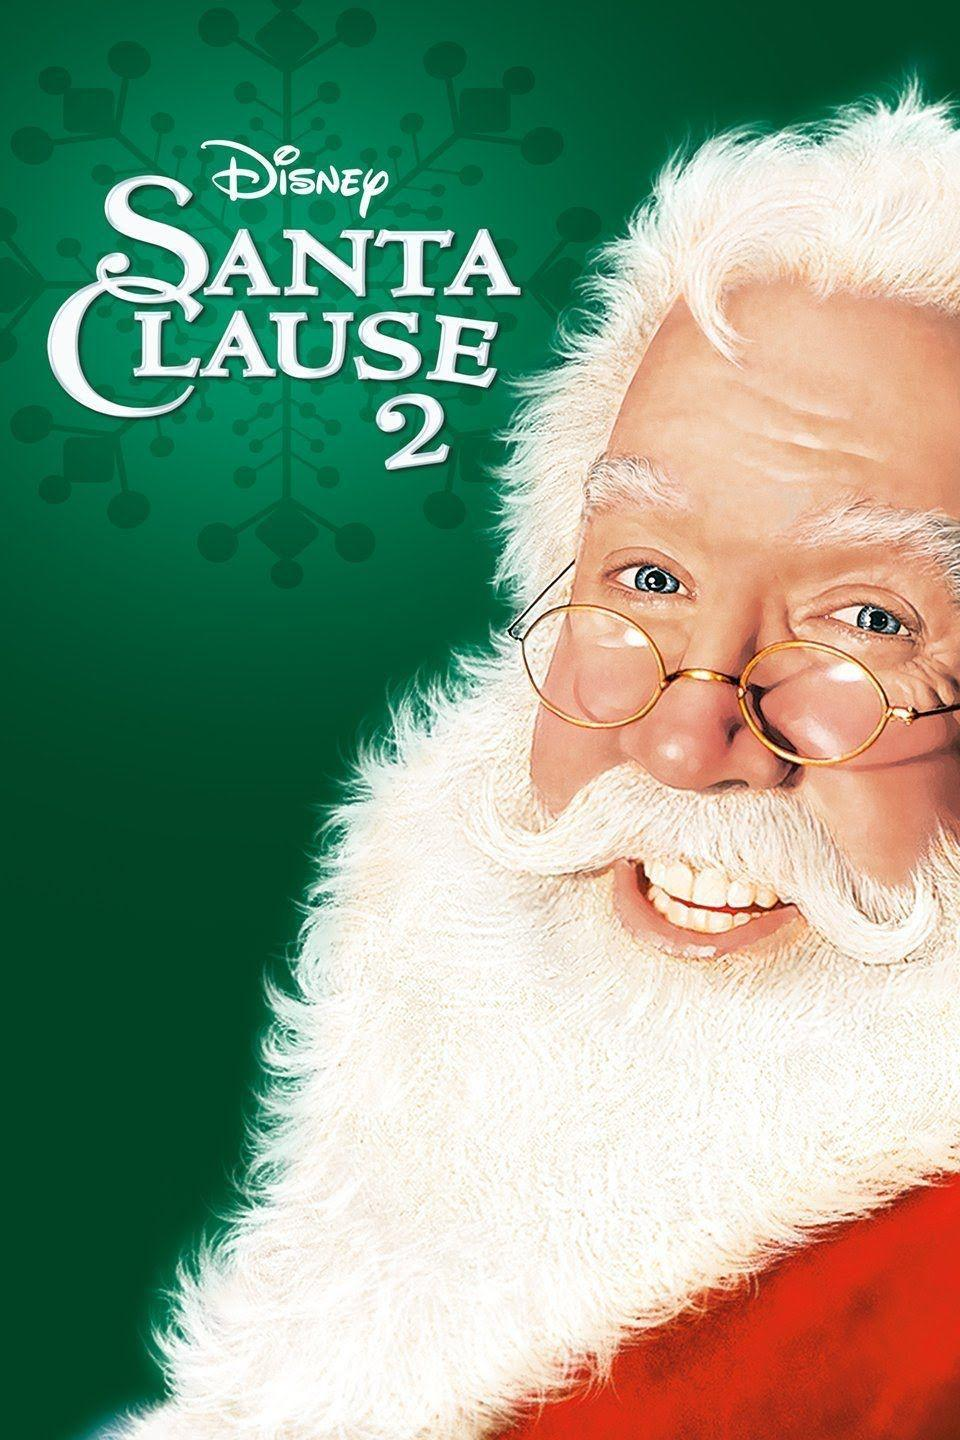 """<p>This wildly successful sequel follows actor Tim Allen's chaotic quest to find a Mrs. Claus before Christmas Eve. If he doesn't beat the clock, he could lose the chance to be Santa forever.</p><p><a class=""""link rapid-noclick-resp"""" href=""""https://www.amazon.com/dp/B006G3MR3I/?tag=syn-yahoo-20&ascsubtag=%5Bartid%7C10050.g.5060%5Bsrc%7Cyahoo-us"""" rel=""""nofollow noopener"""" target=""""_blank"""" data-ylk=""""slk:STREAM IT ON PRIME"""">STREAM IT ON PRIME</a></p><p><a class=""""link rapid-noclick-resp"""" href=""""https://go.redirectingat.com?id=74968X1596630&url=https%3A%2F%2Fwww.disneyplus.com%2Fmovies%2Fthe-santa-clause-2%2F6wF7rjLypc61&sref=https%3A%2F%2Fwww.countryliving.com%2Flife%2Fentertainment%2Fg5060%2Fbest-disney-christmas-movies%2F"""" rel=""""nofollow noopener"""" target=""""_blank"""" data-ylk=""""slk:STREAM IT ON DISNEY+"""">STREAM IT ON DISNEY+</a> </p>"""